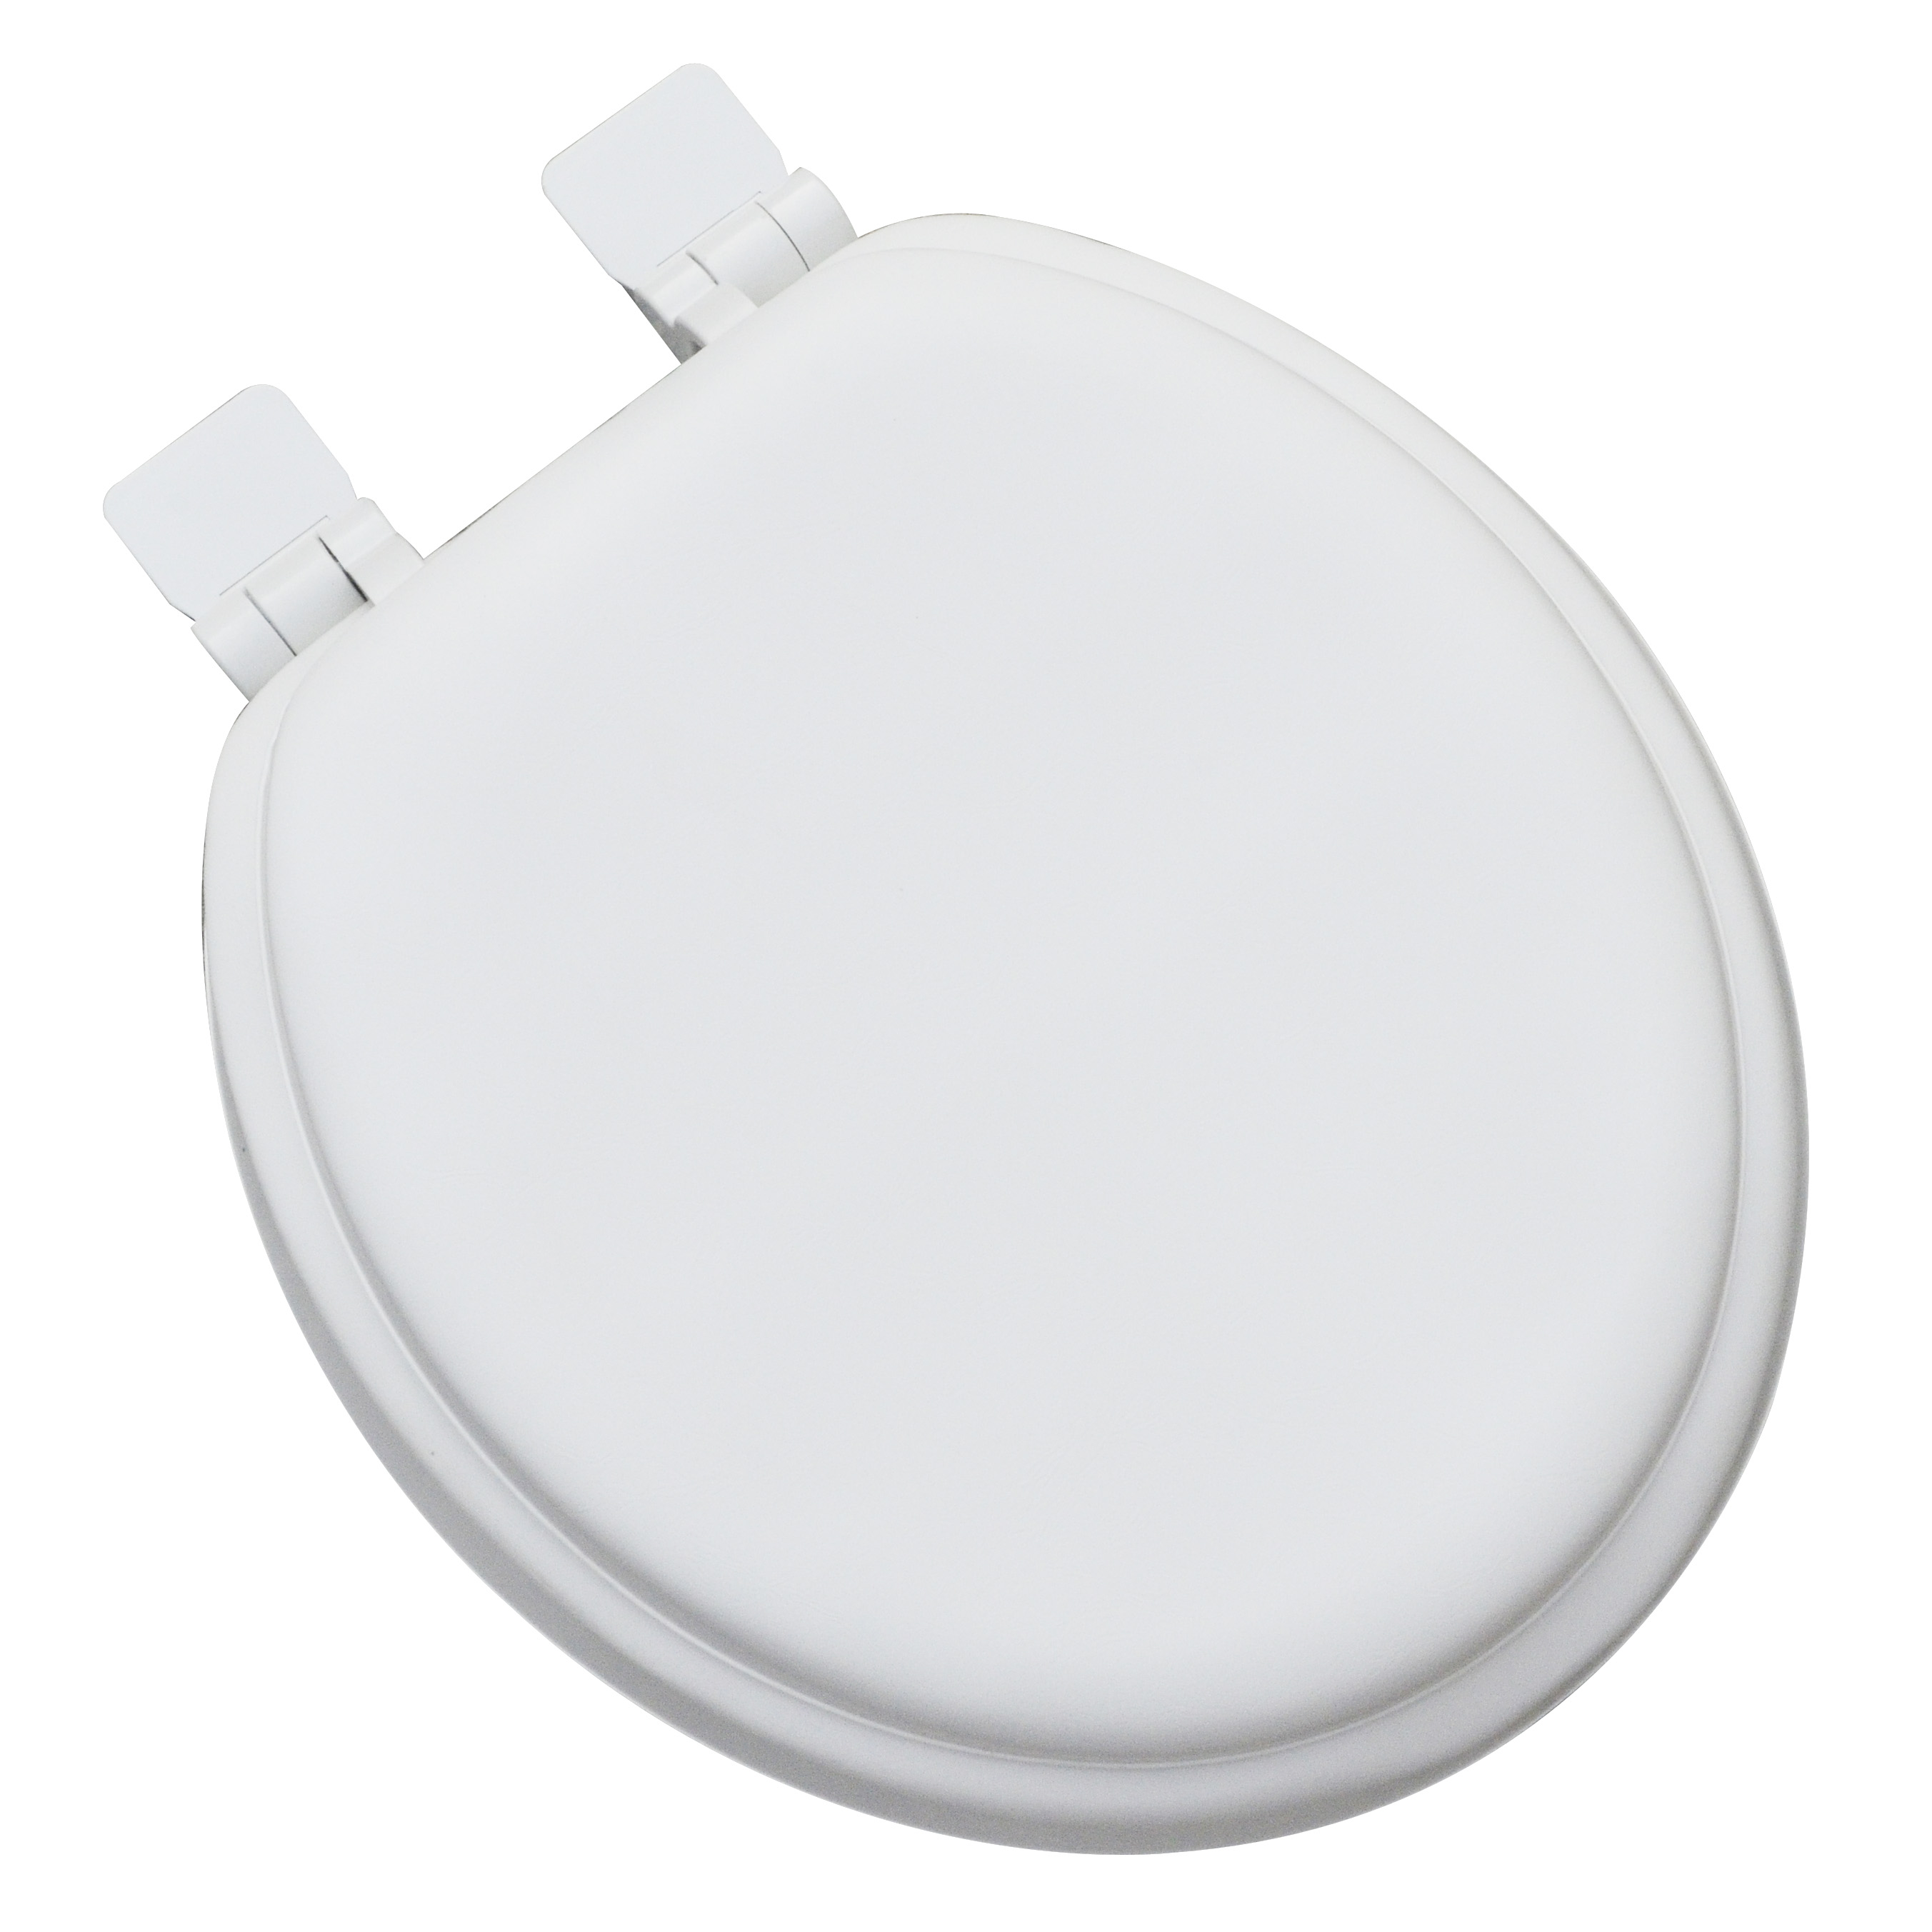 Wondrous Premium Slow Close Soft Round Toilet Seat With A Closed Front And Wood Cores Osg Adjustable Release N Clean In White Spiritservingveterans Wood Chair Design Ideas Spiritservingveteransorg